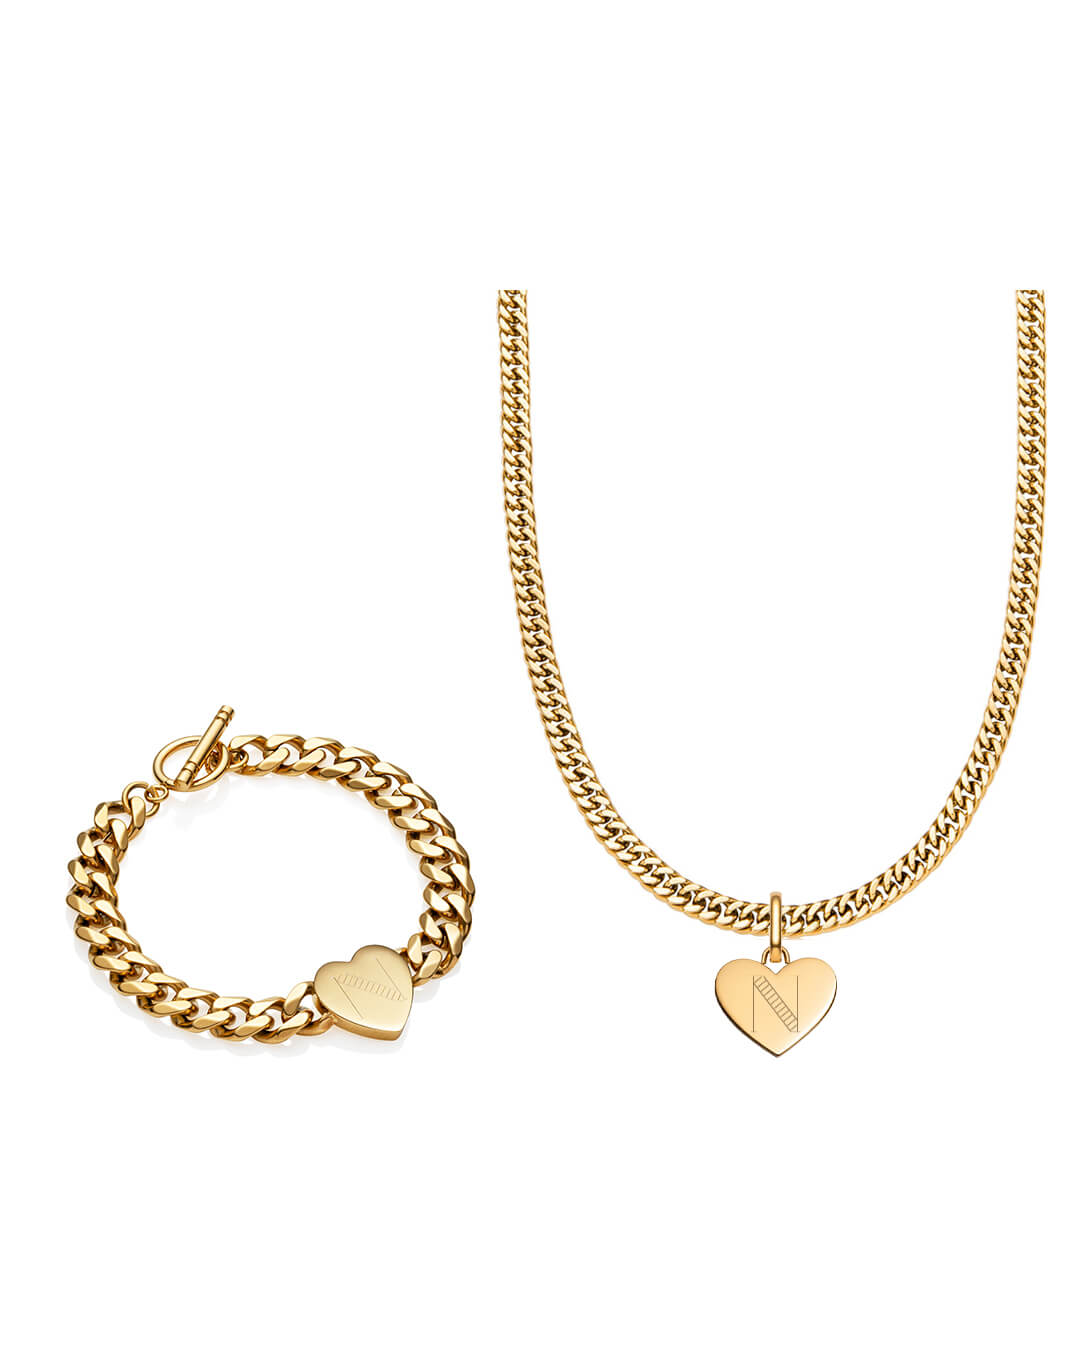 Heart Curb Chain Necklace & Bracelet Gift Set (Gold)